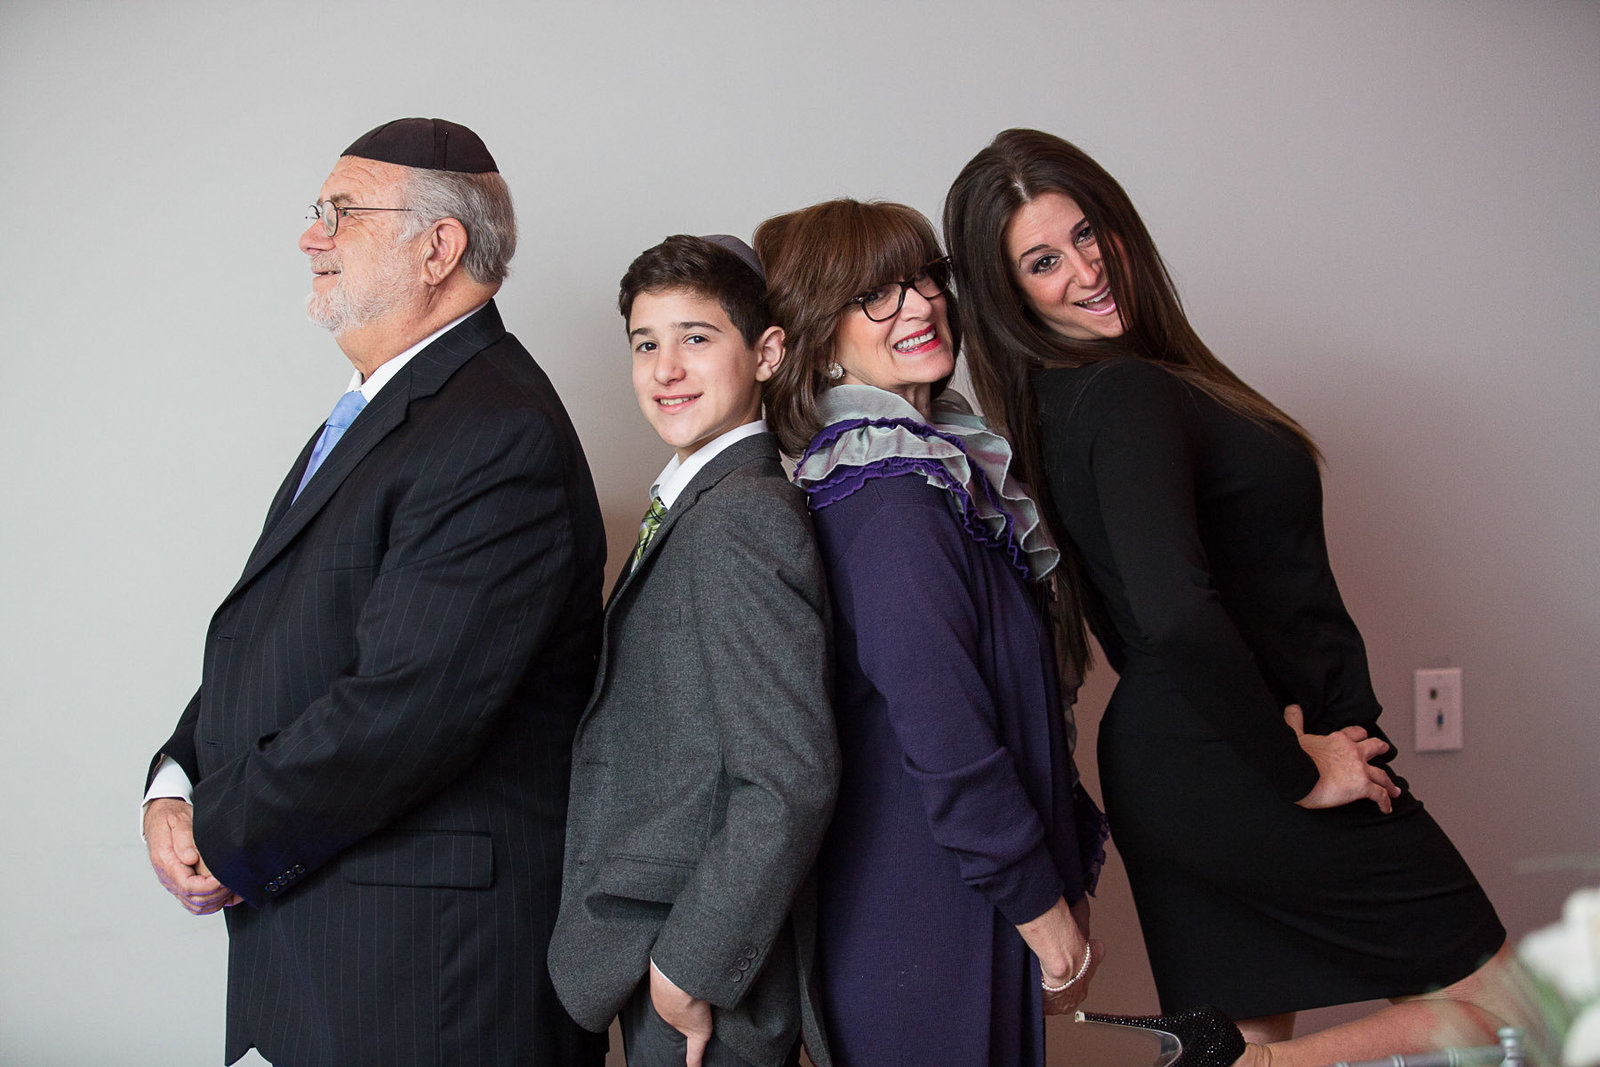 Jewish-Bar-Bat-Mitzvah-Event-Photography-20151125-2003